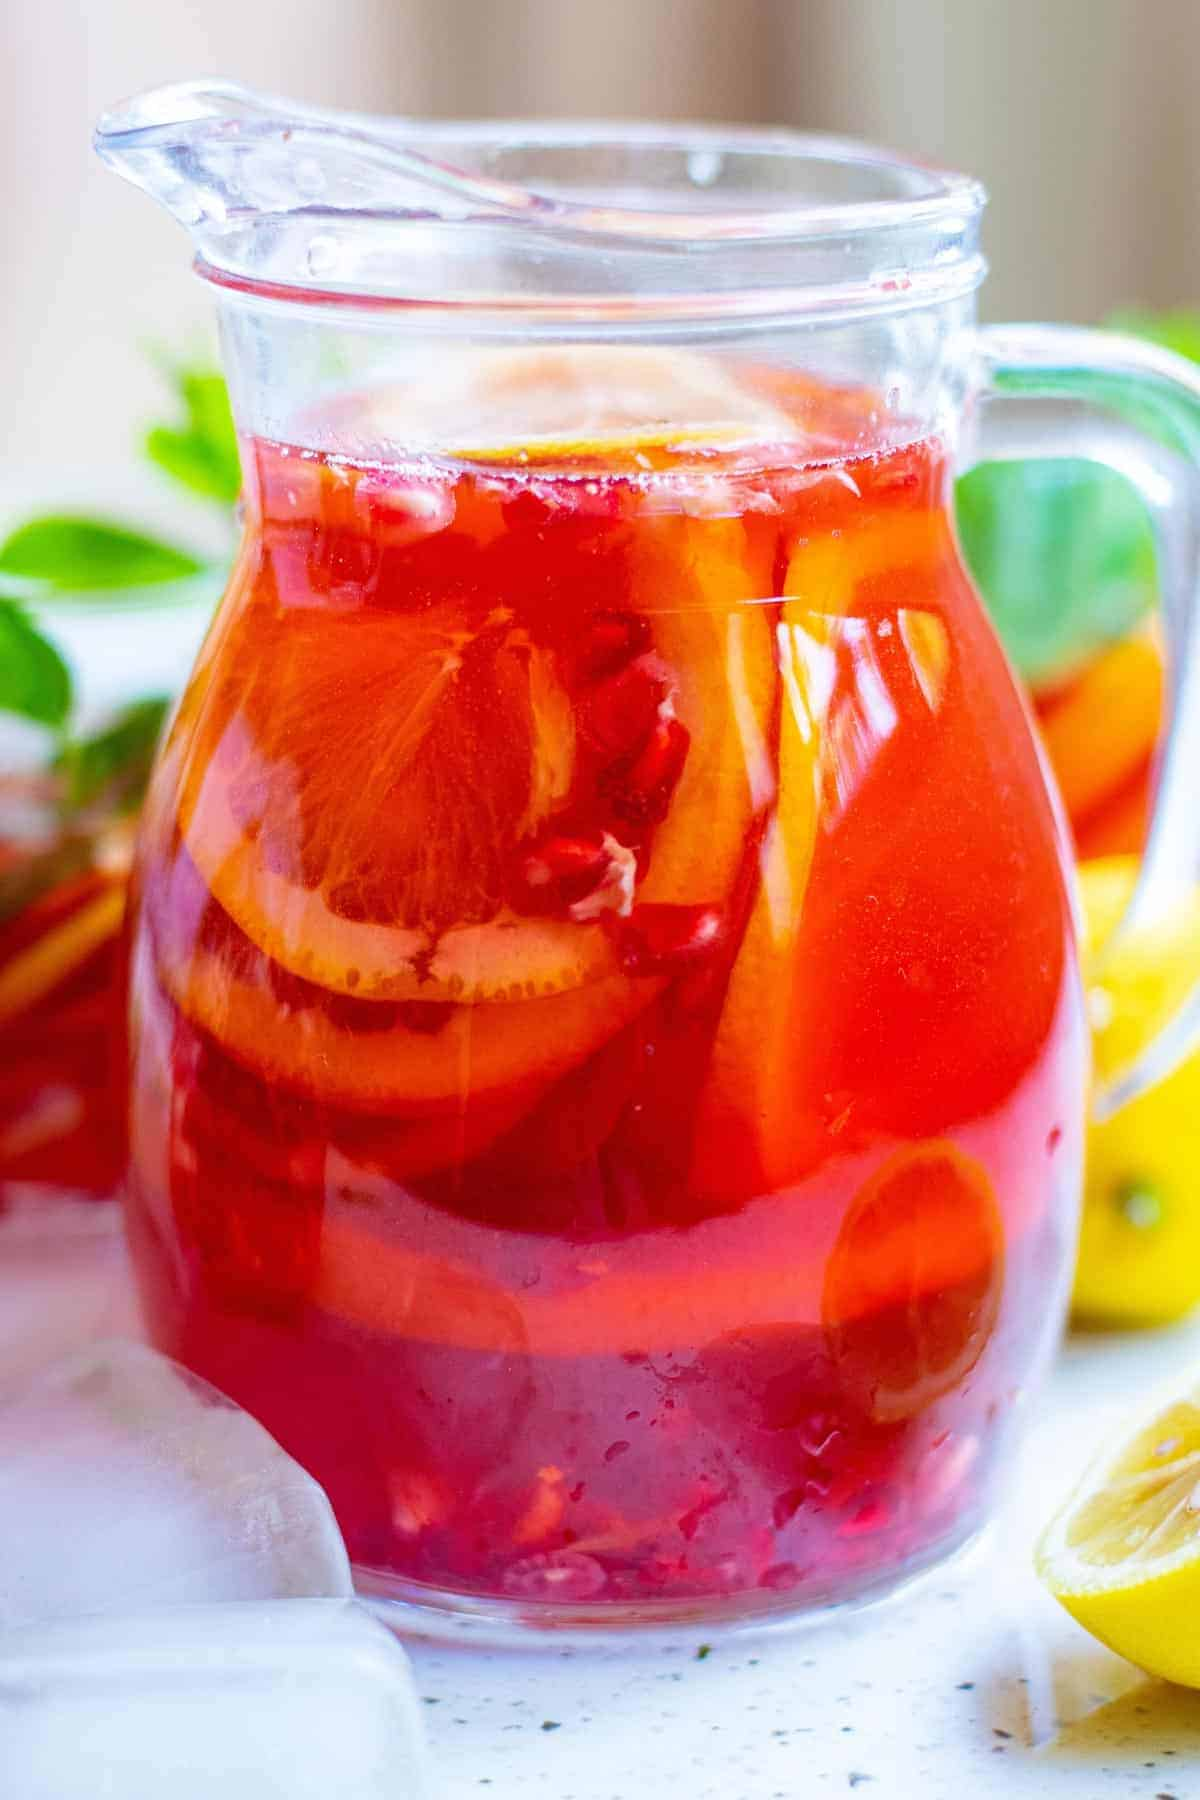 Pitcher of bright red punch with citrus slices.